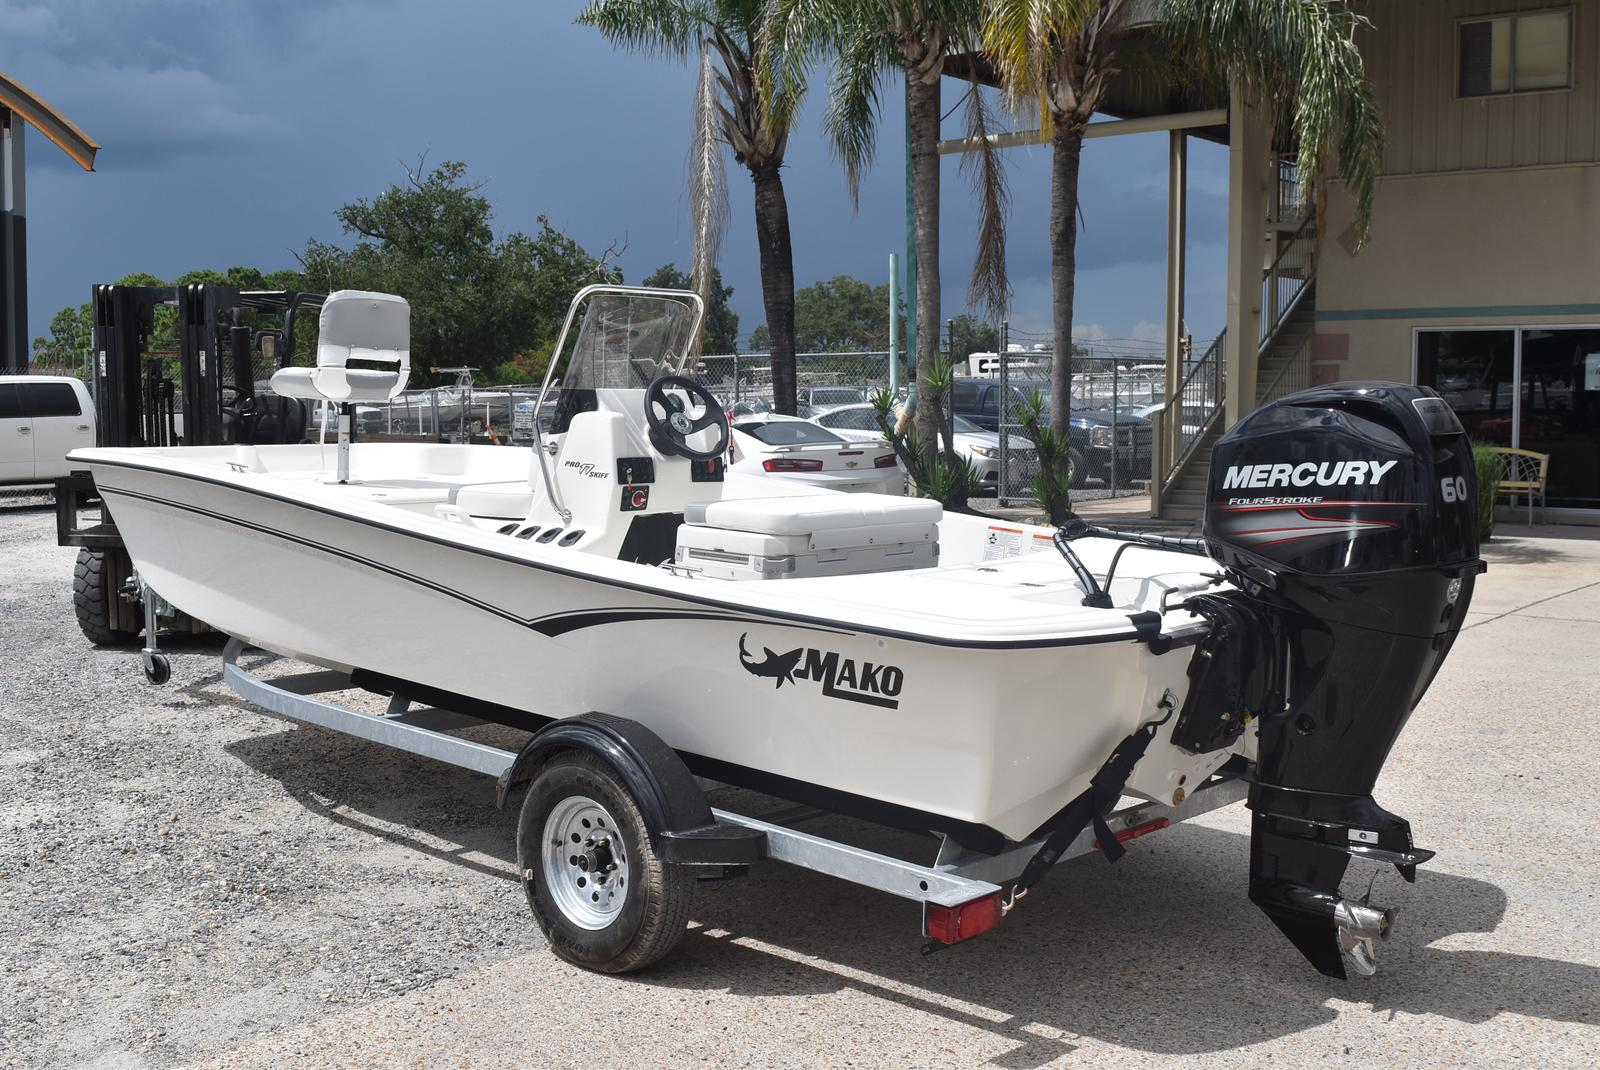 2020 Mako boat for sale, model of the boat is Pro Skiff 17, 75 ELPT & Image # 191 of 702